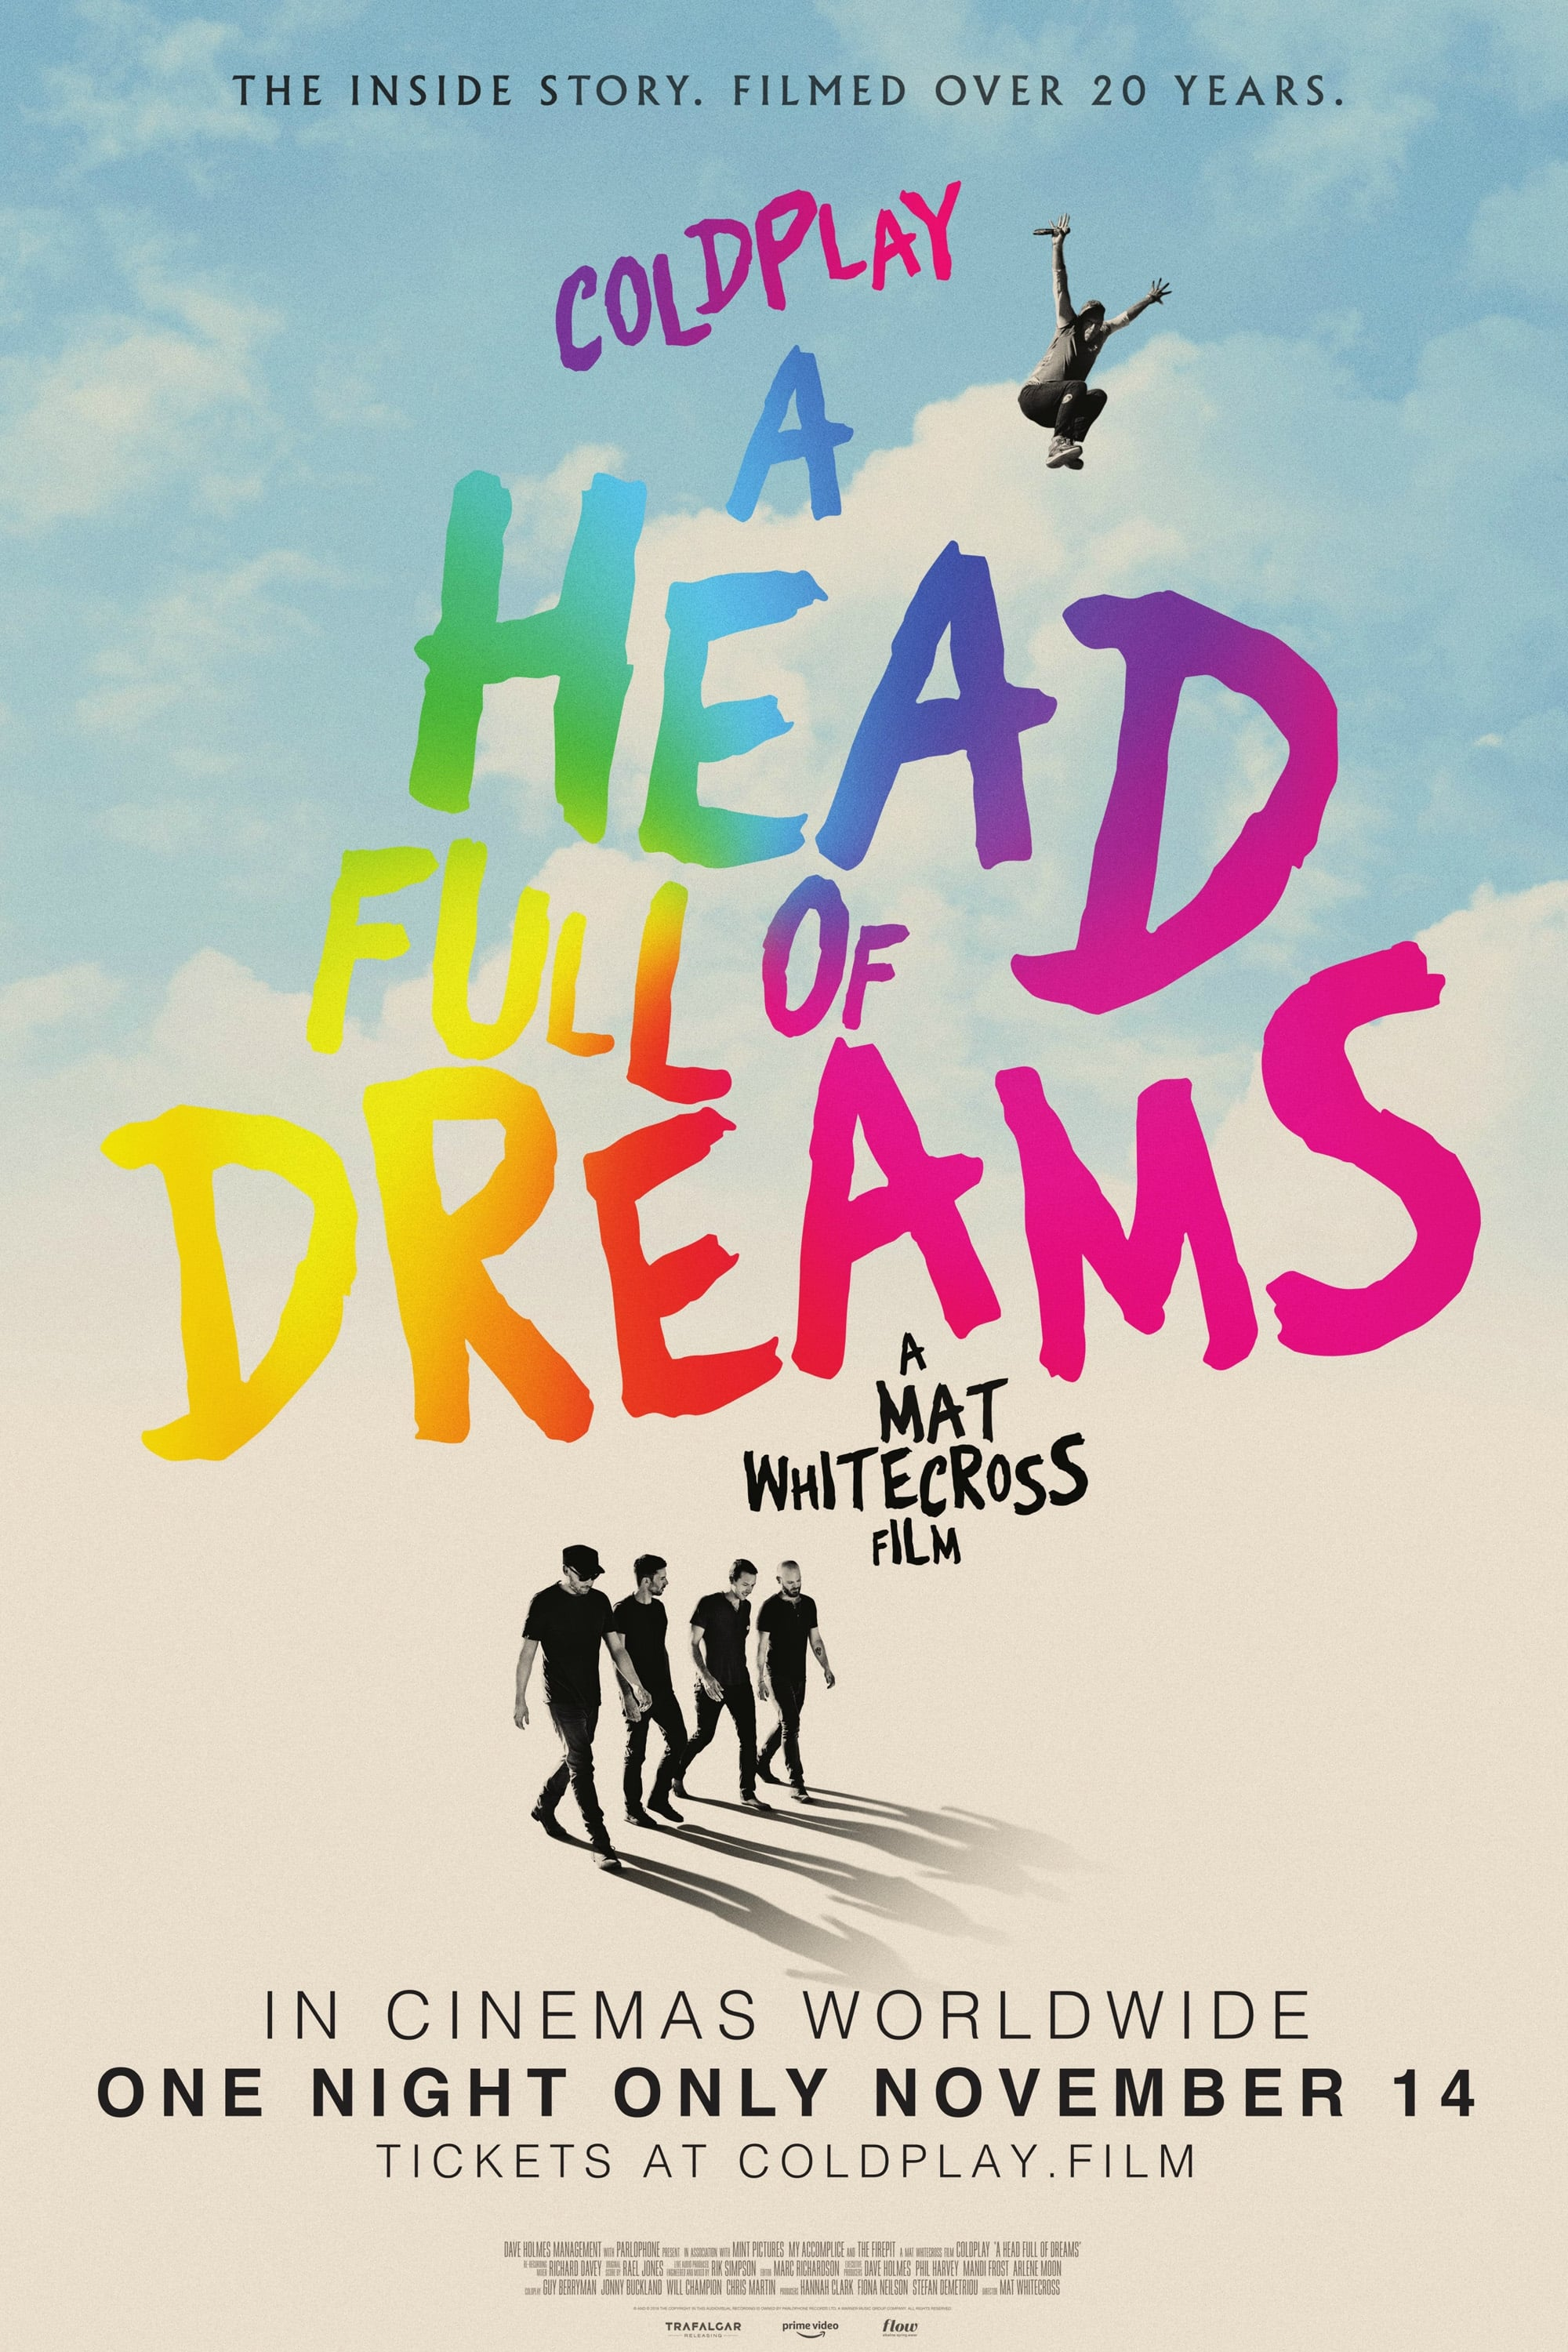 image for Coldplay: A Head Full of Dreams